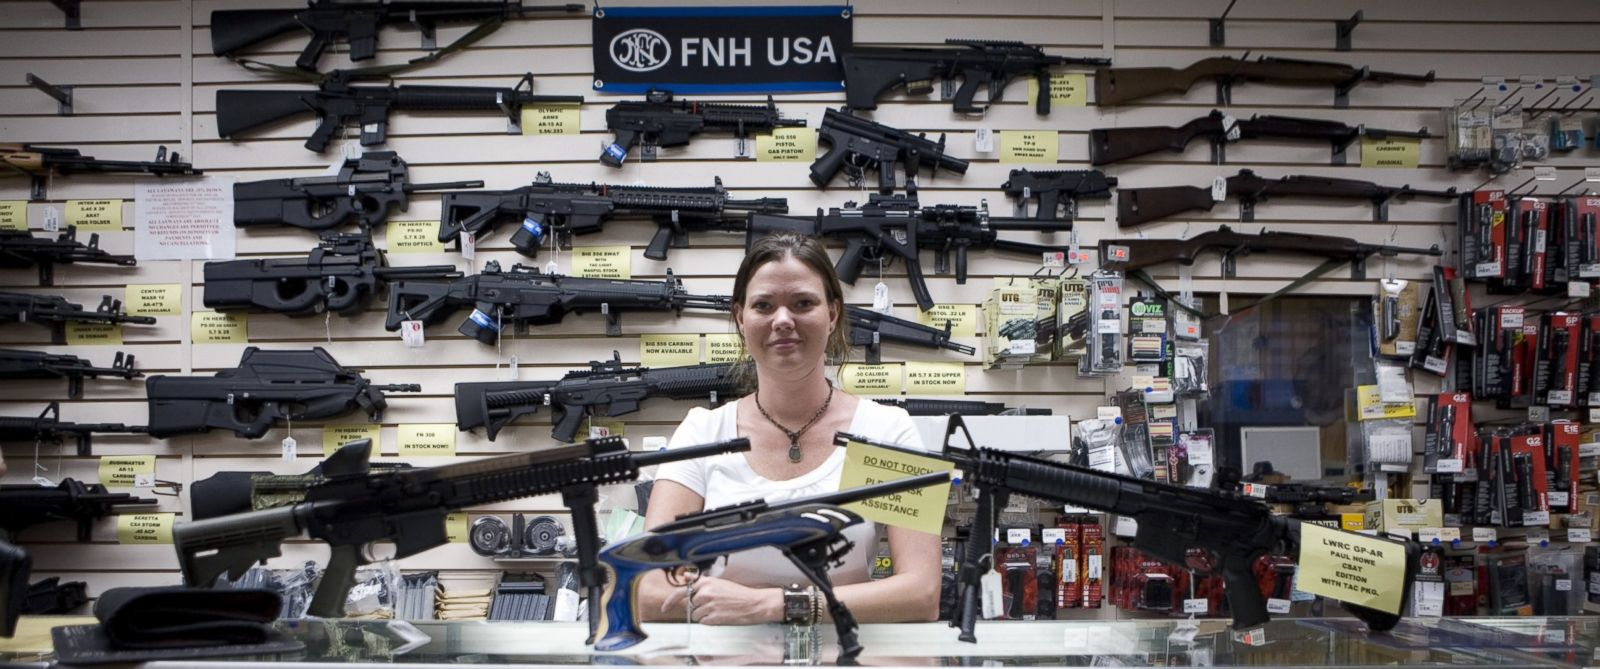 PHOTO: Gina Brewer, the manager of Texas Gun, one of the 6,700 gun dealers located near the 2,000 miles long U.S.-Mexico border, insists that she has not sold weapons to Mexican drug cartels representatives, in San Antonio on June 17 2009.